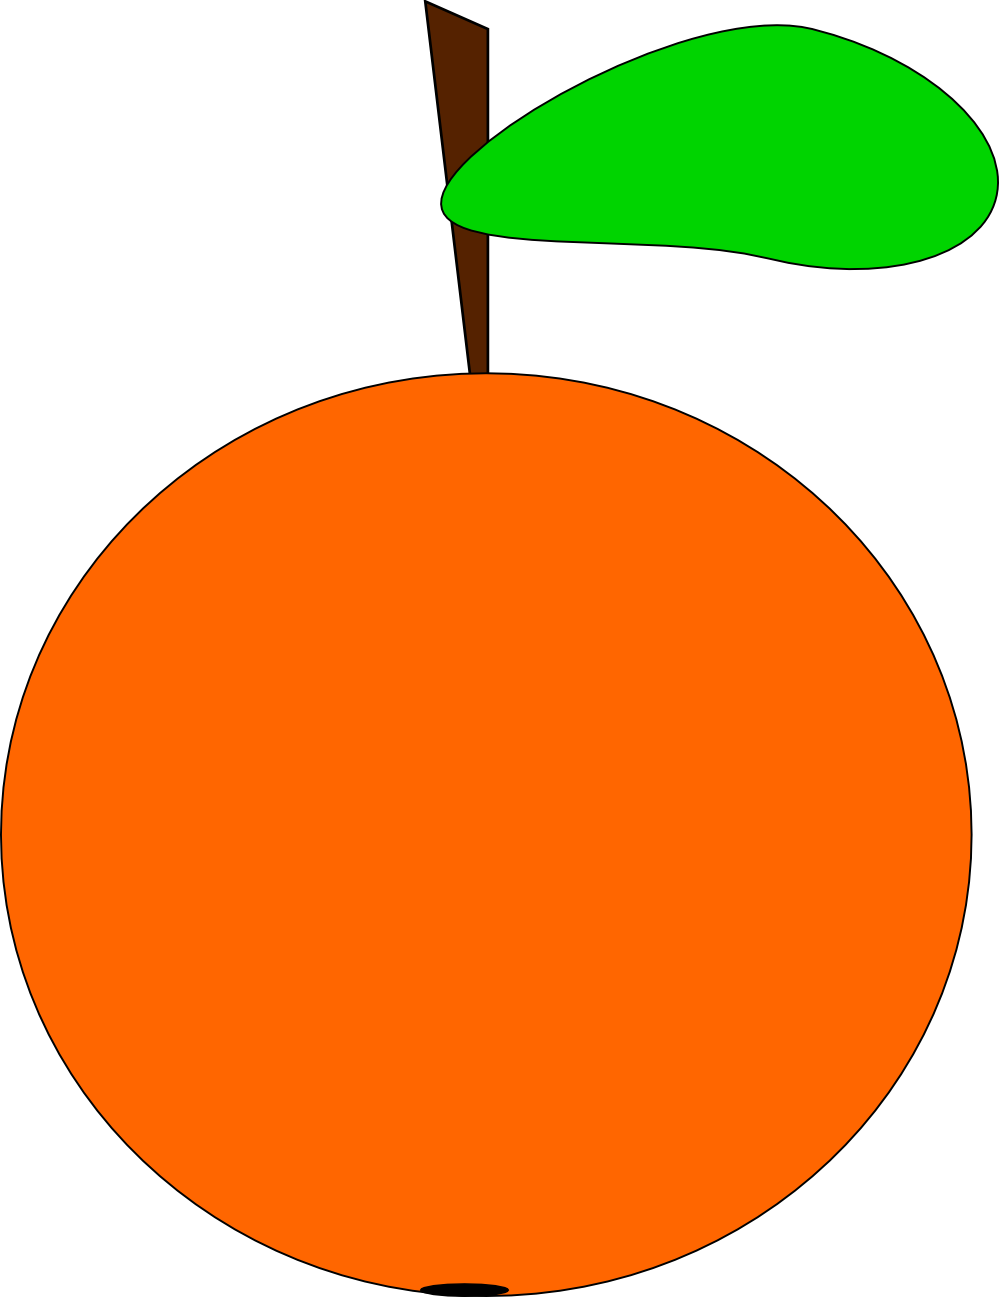 Orange Image PNG Image